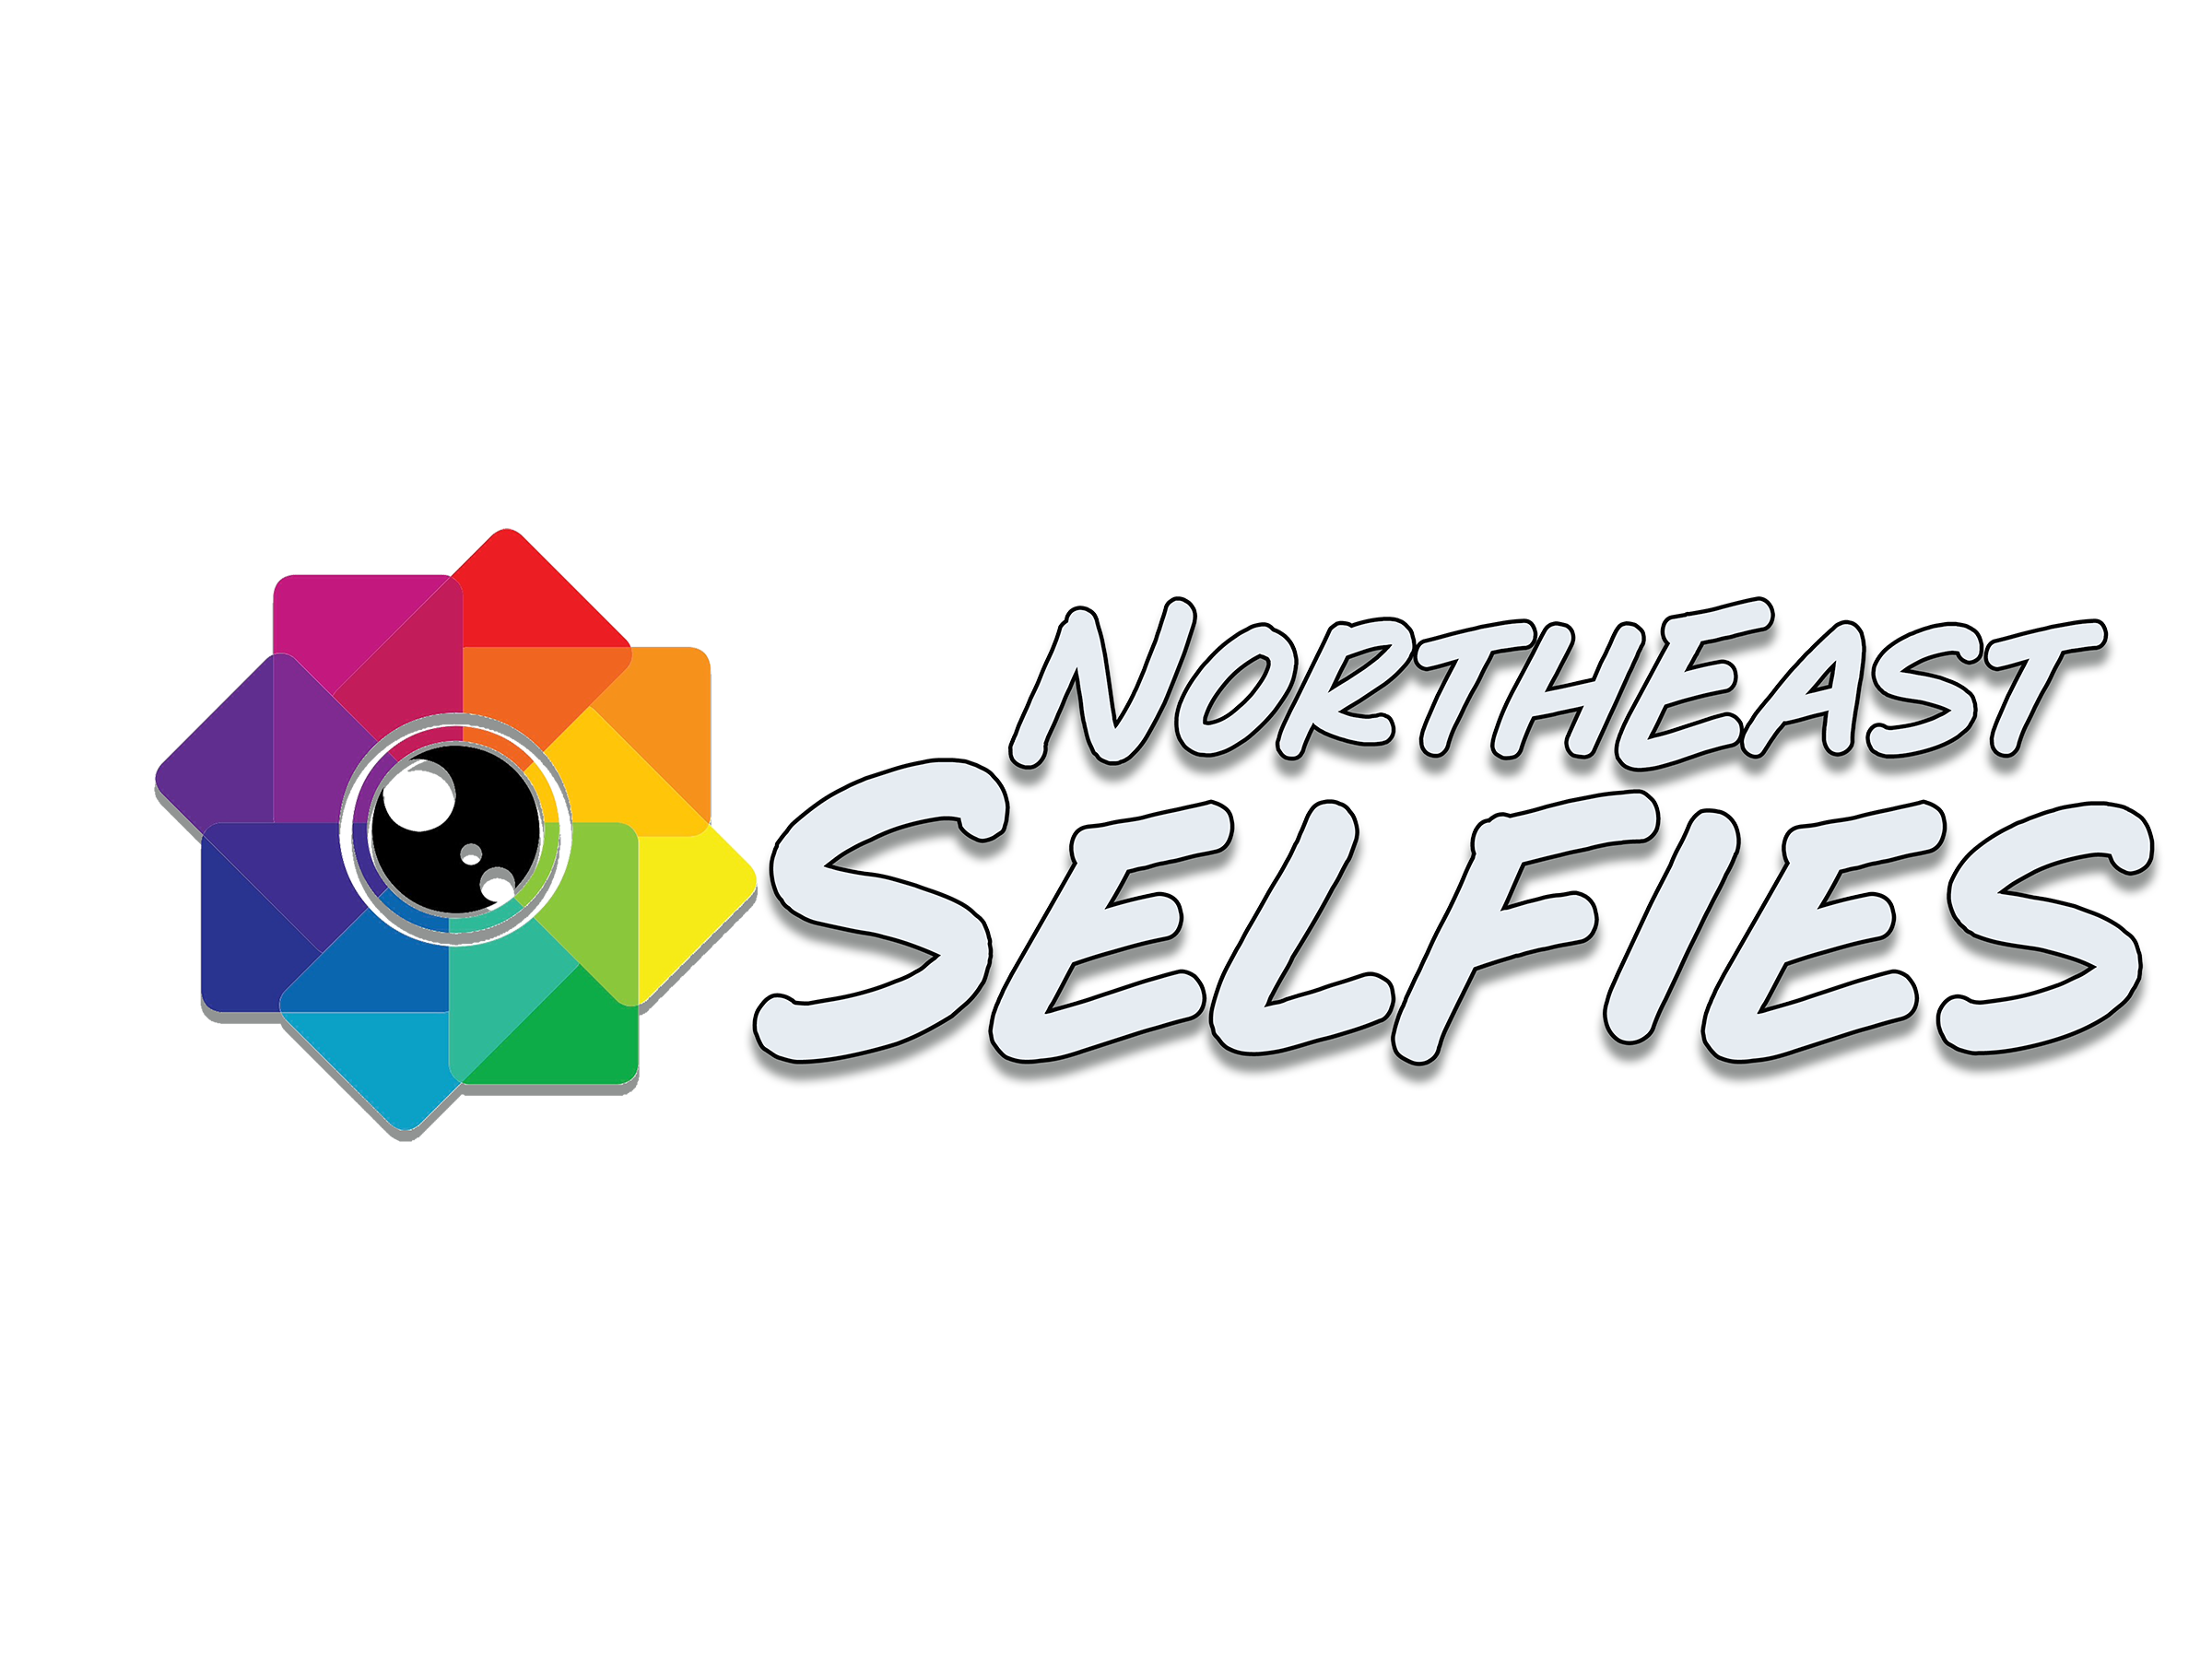 northeast selfies logo